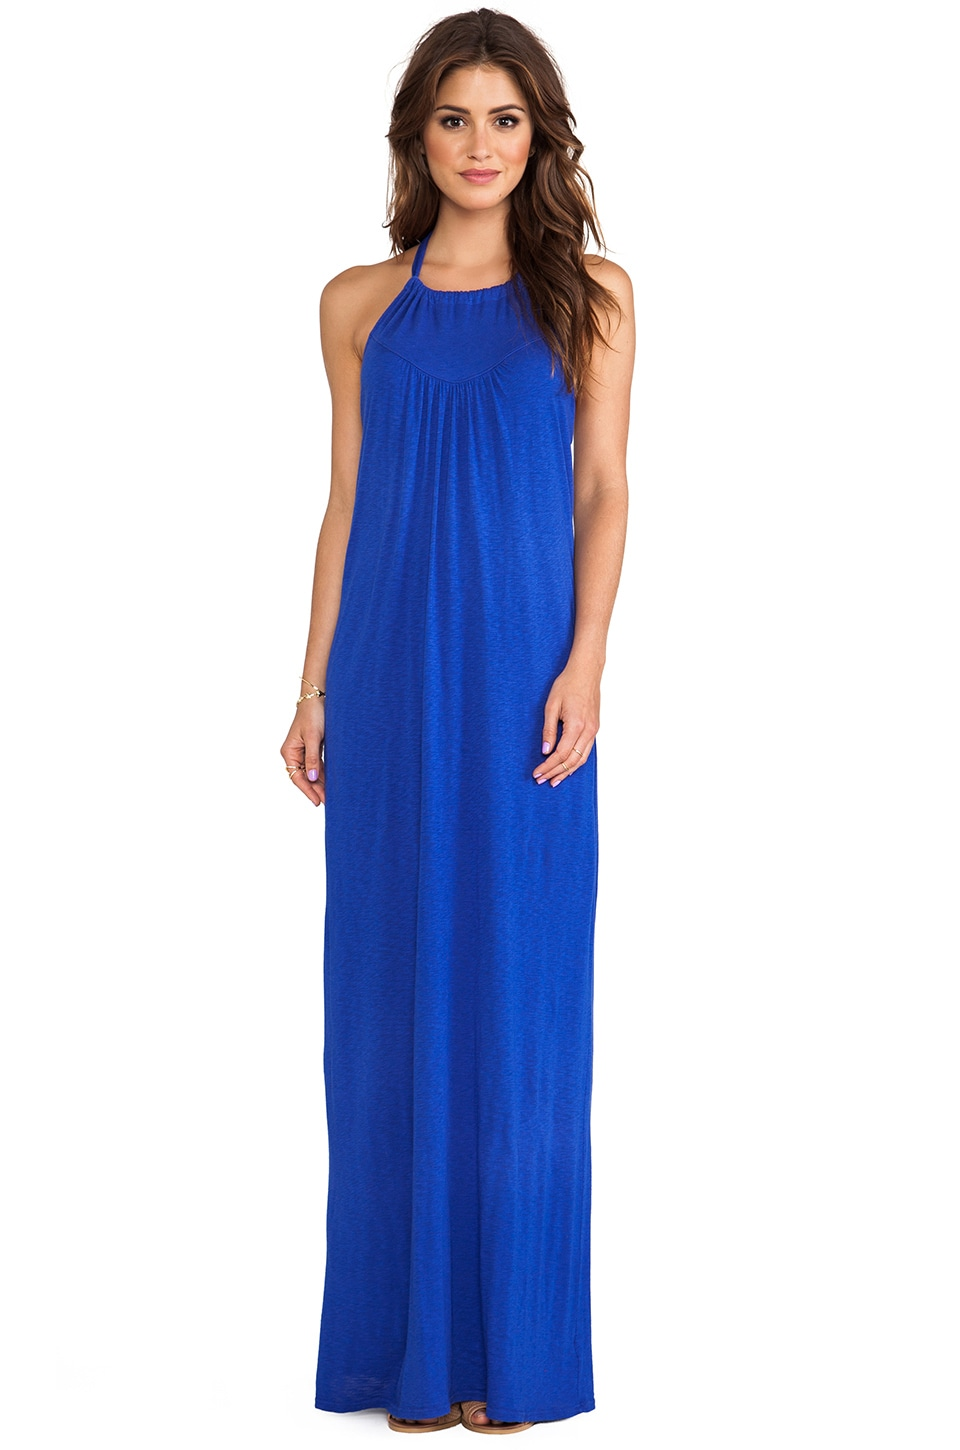 LA Made Halter Maxi Dress in Scuba